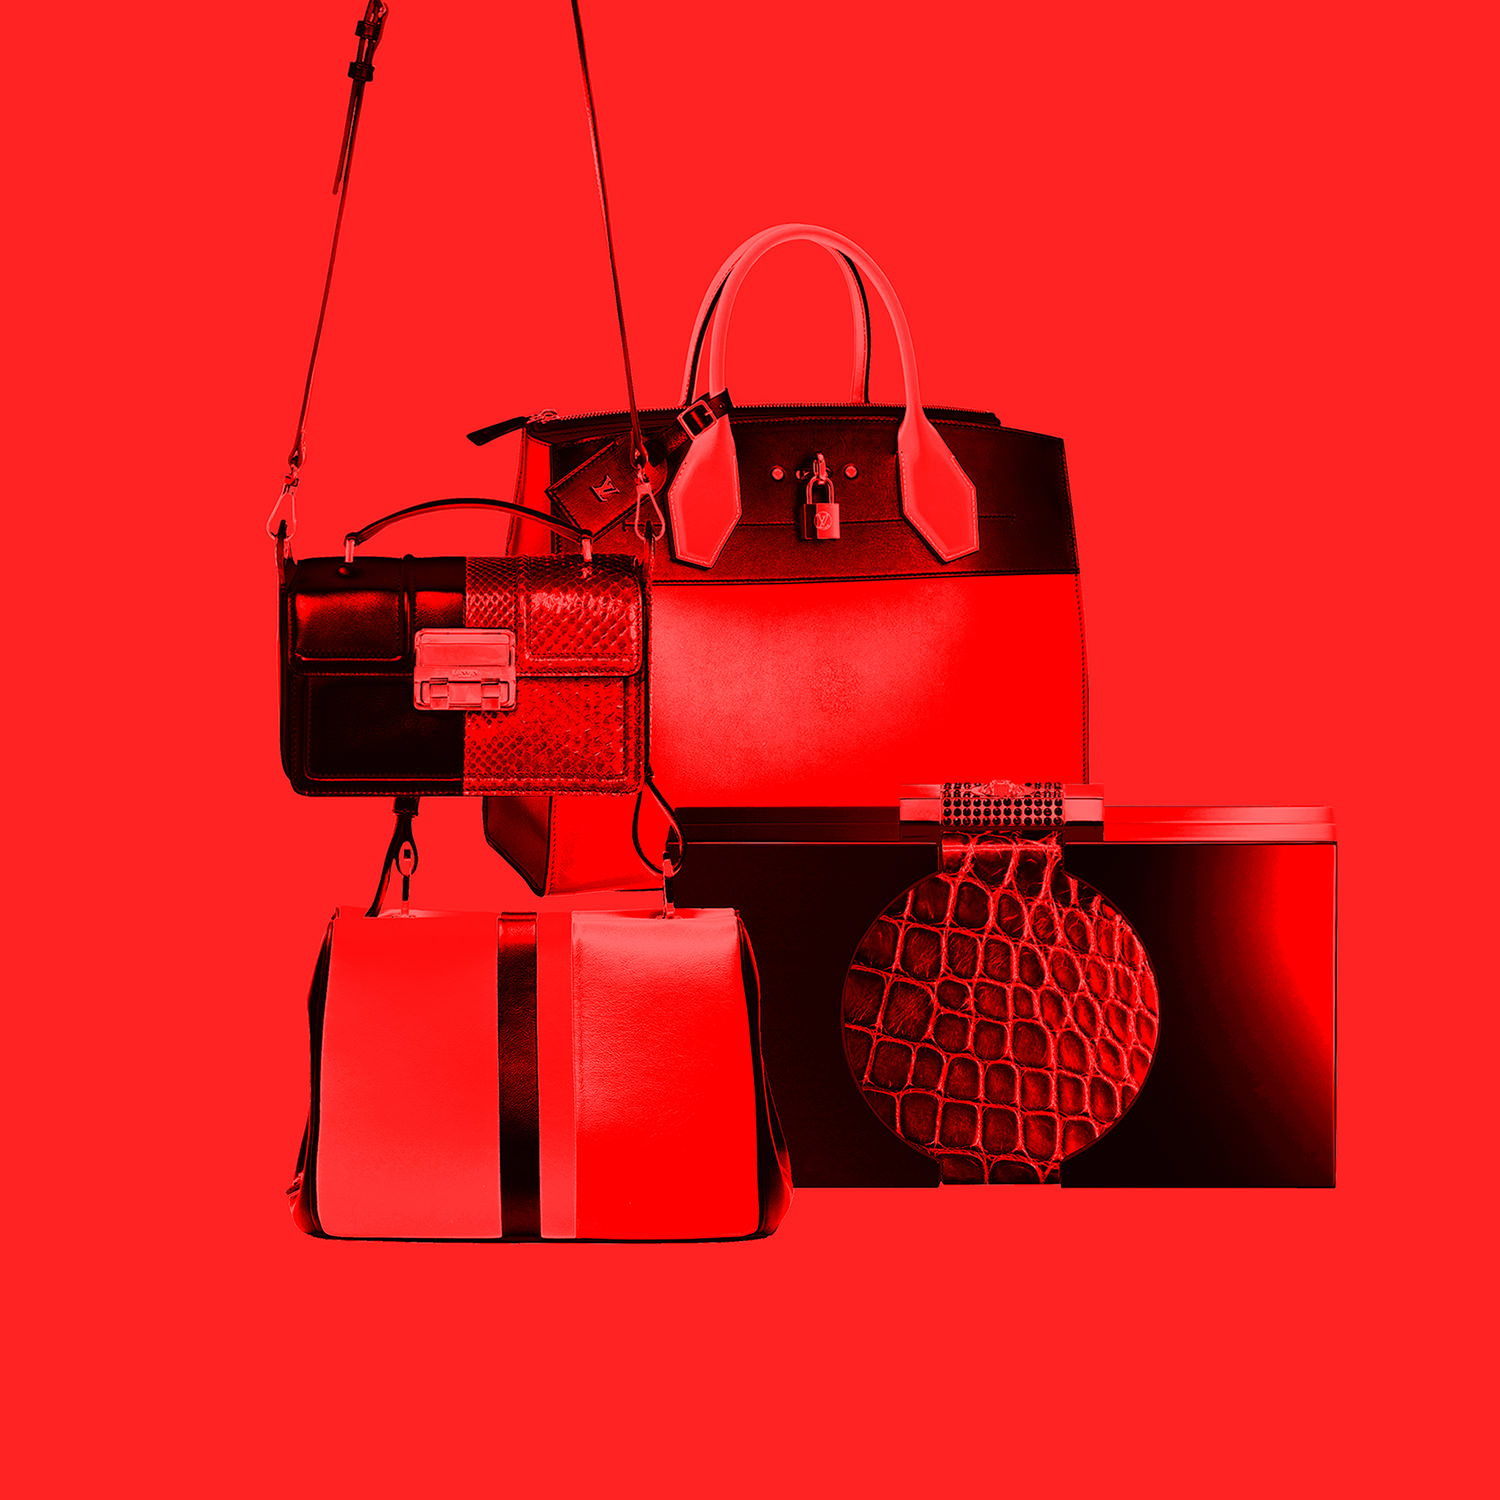 """Leather and python bag, LANVIN. """"City Steamer"""" leather bag, LOUIS VUITTON. """"Frame"""" leather bag, PRADA. Plexiglas, alligator and Swarovski cristals pouch, BY KILIAN.  Selection by Rebecca Bleynie"""